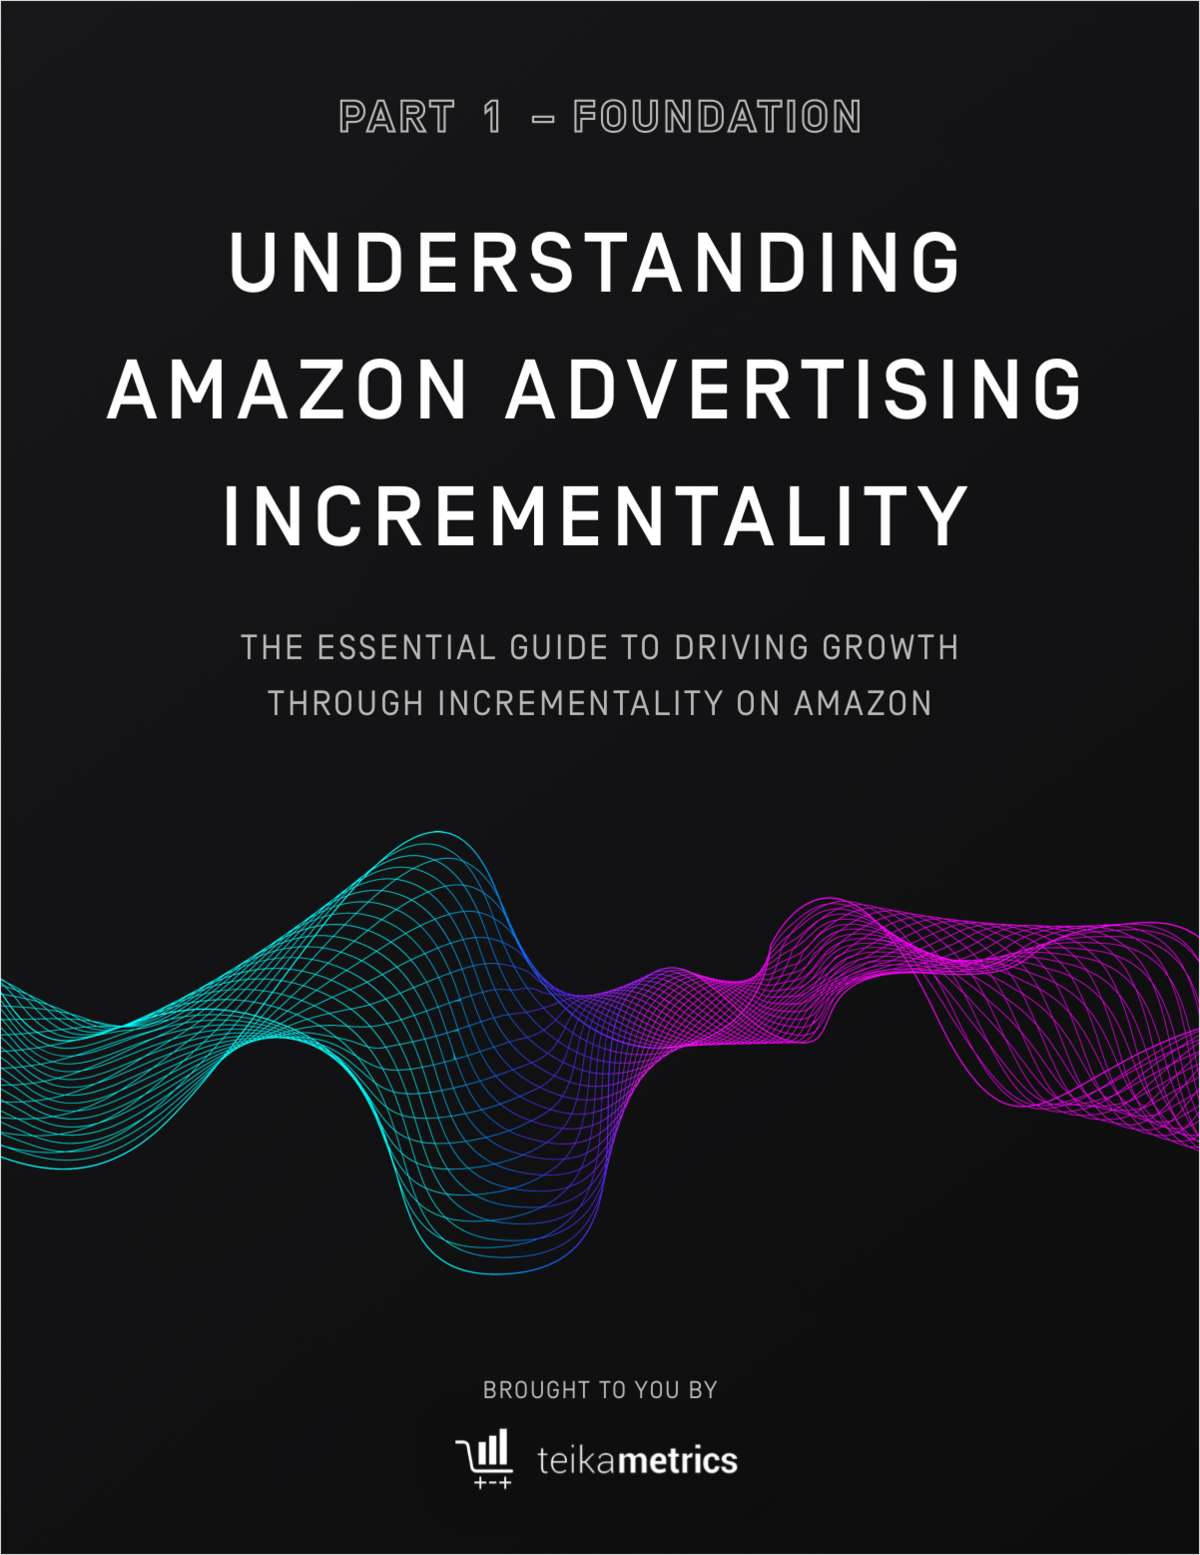 Understanding Amazon Advertising Incrementality Part 1: Foundation